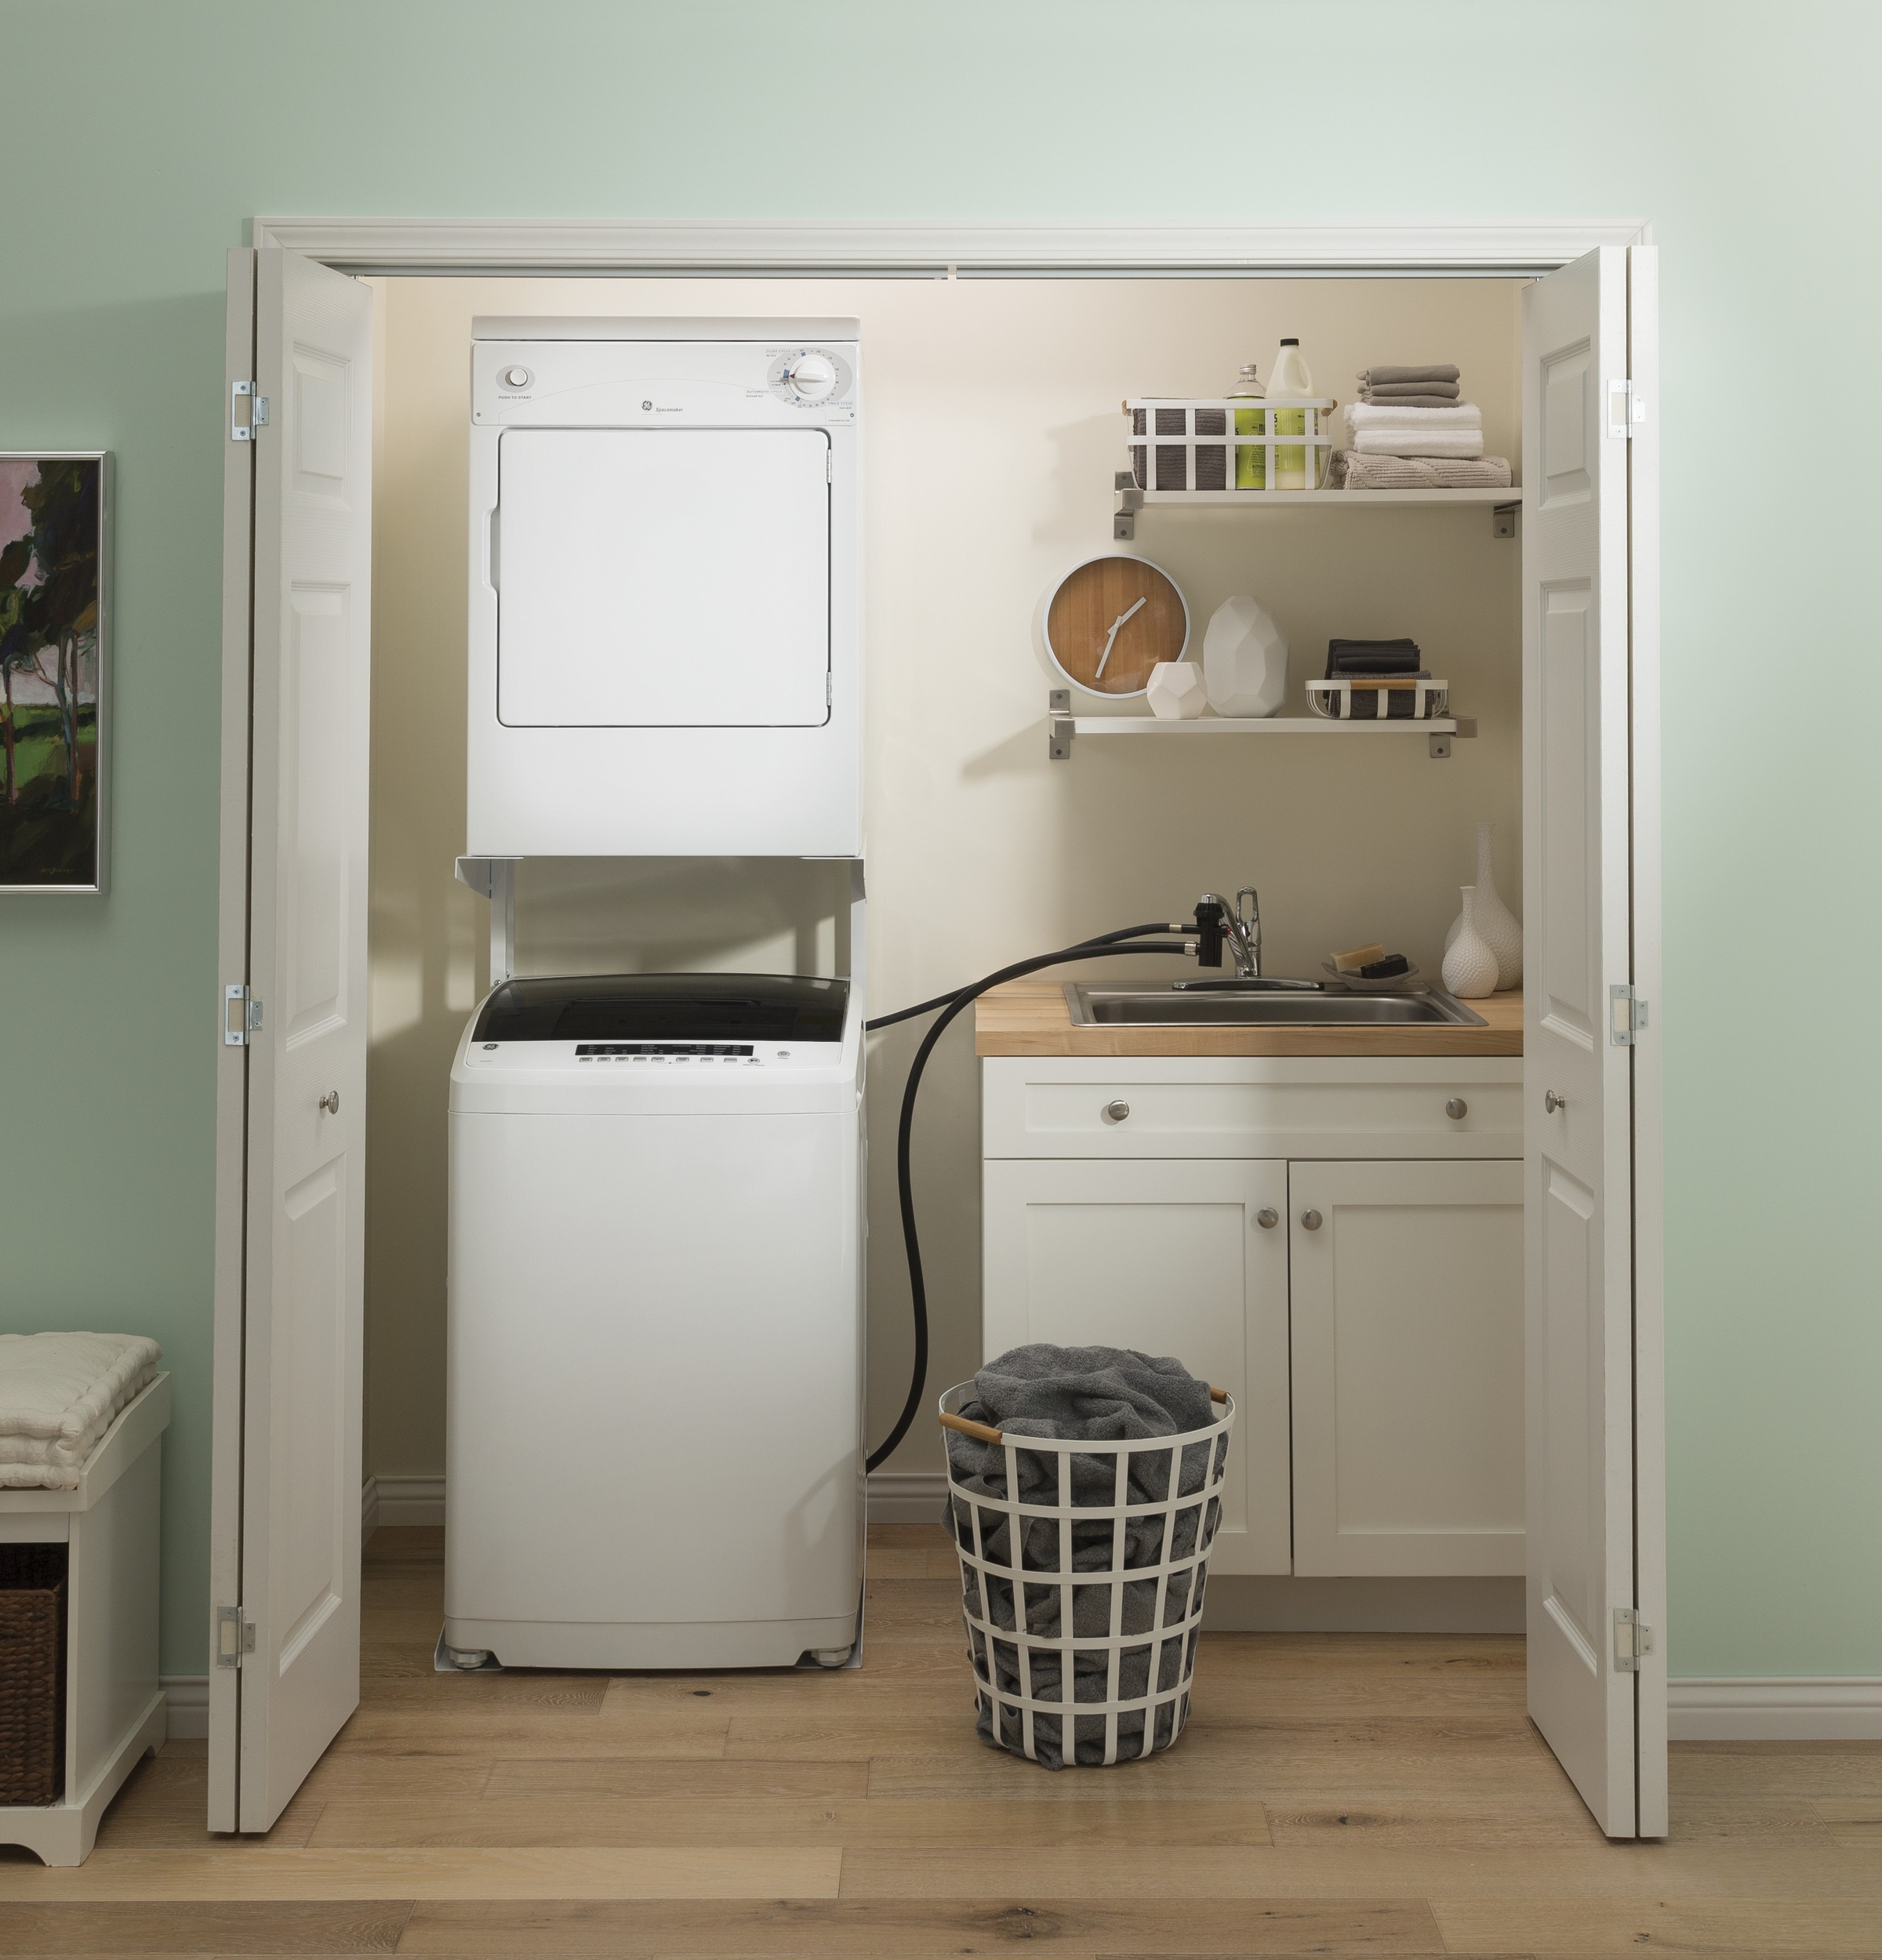 Model: GNW128PSMWW | GE GE® Space-Saving 2.8 cu. ft. Capacity Portable Washer with Stainless Steel Basket